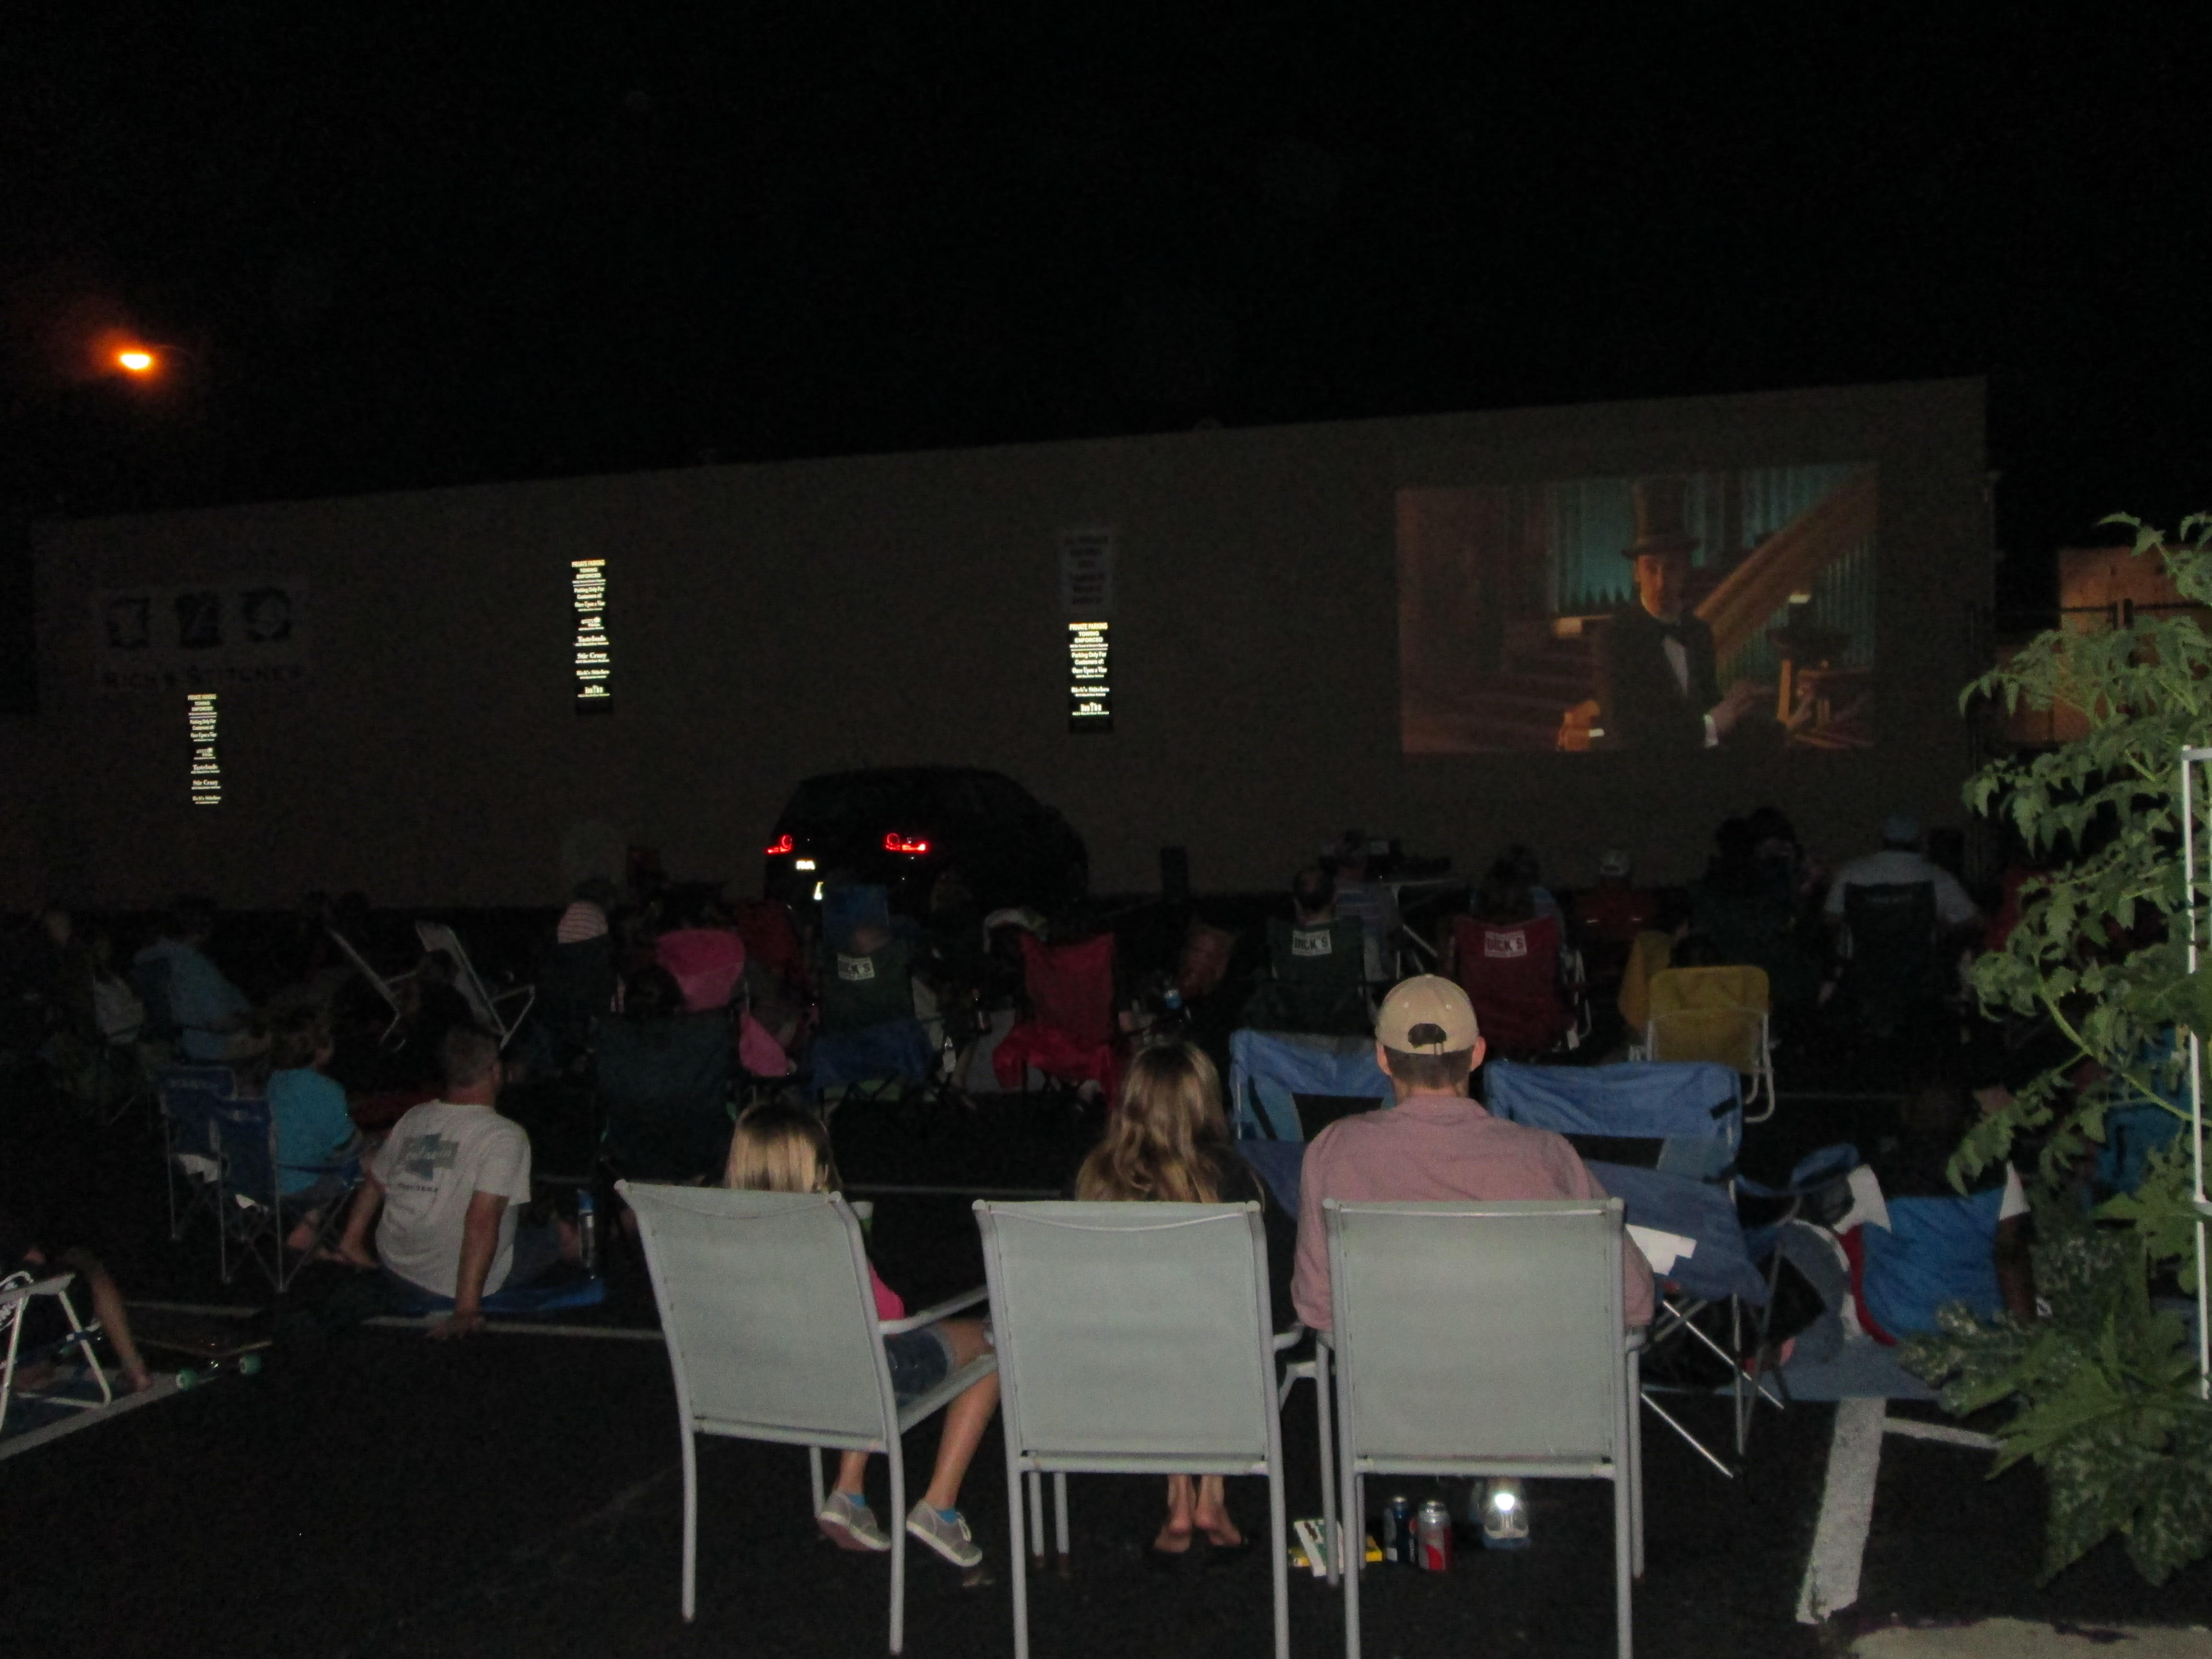 Caption: Movie Nights at Once Upon A Vine, Credit: Charles McGuigan